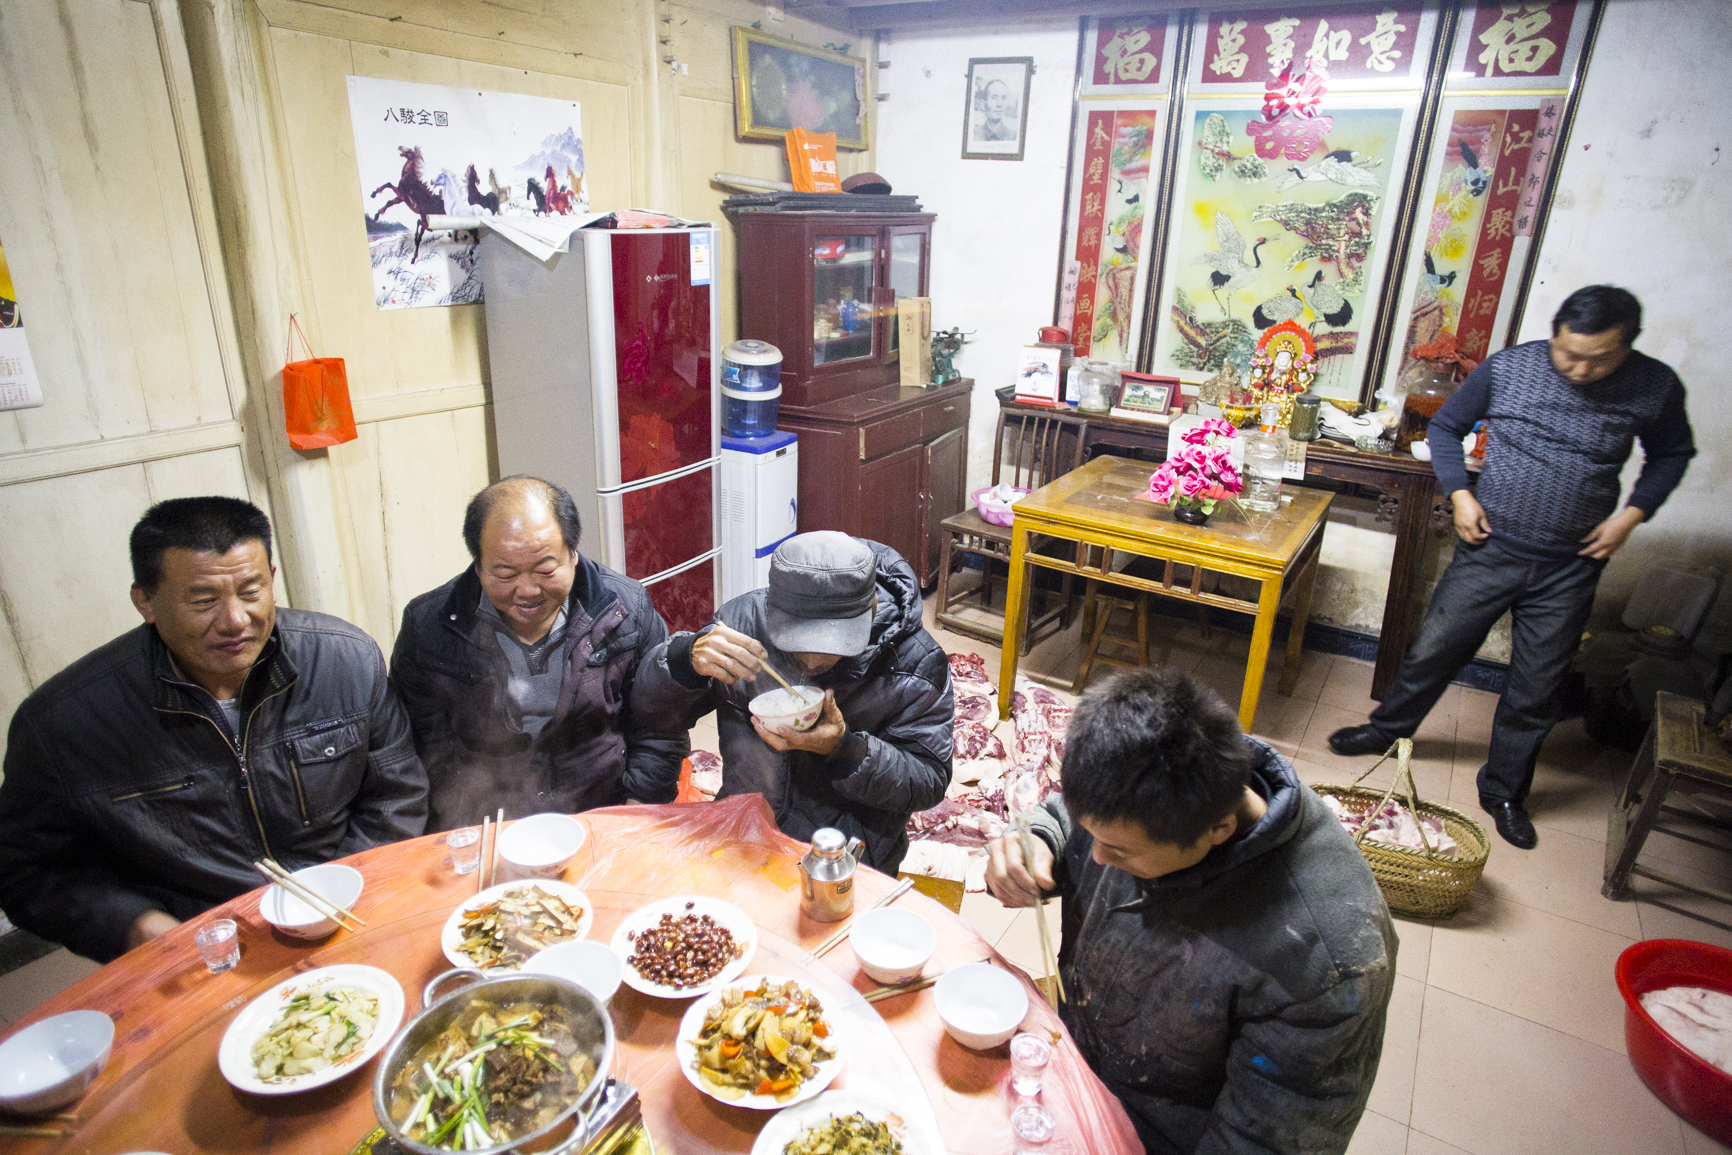 MG_1292 The raw pork were left to cool off on the floor in the living room while men enjoy dinner after the hour long slaughtering. Photo by Ann Wang